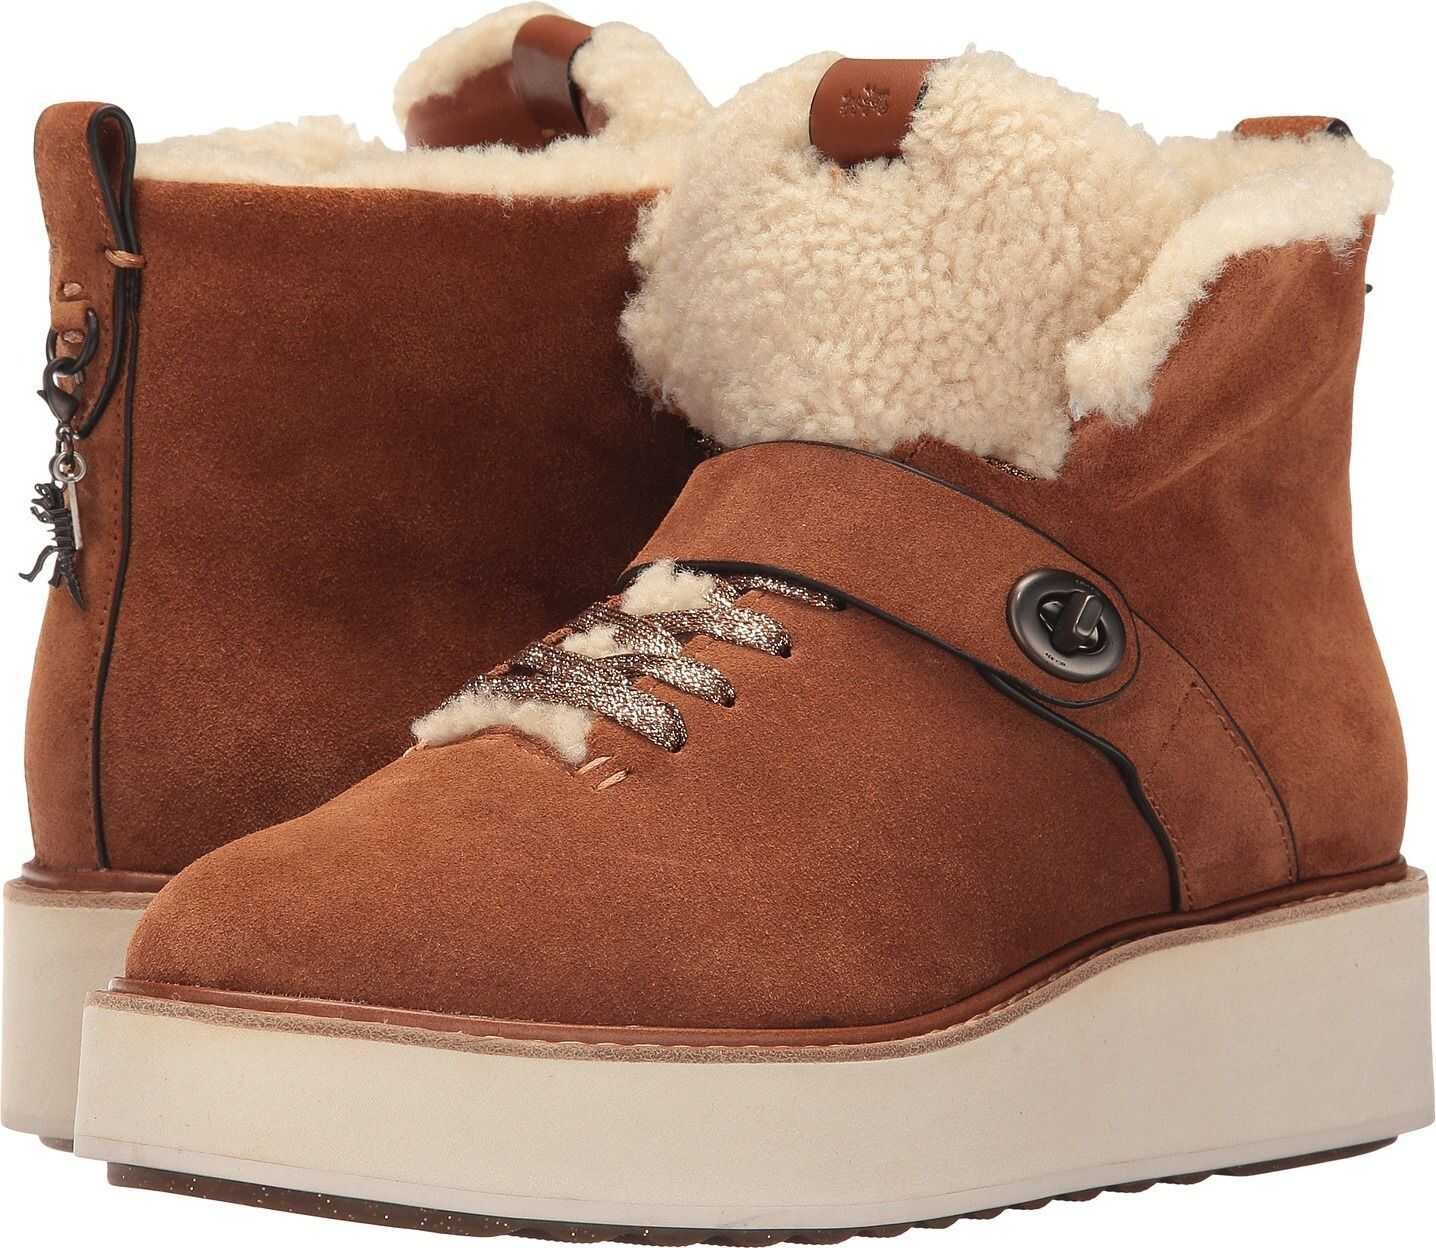 COACH Urban Hiker Saddle/Natural Suede